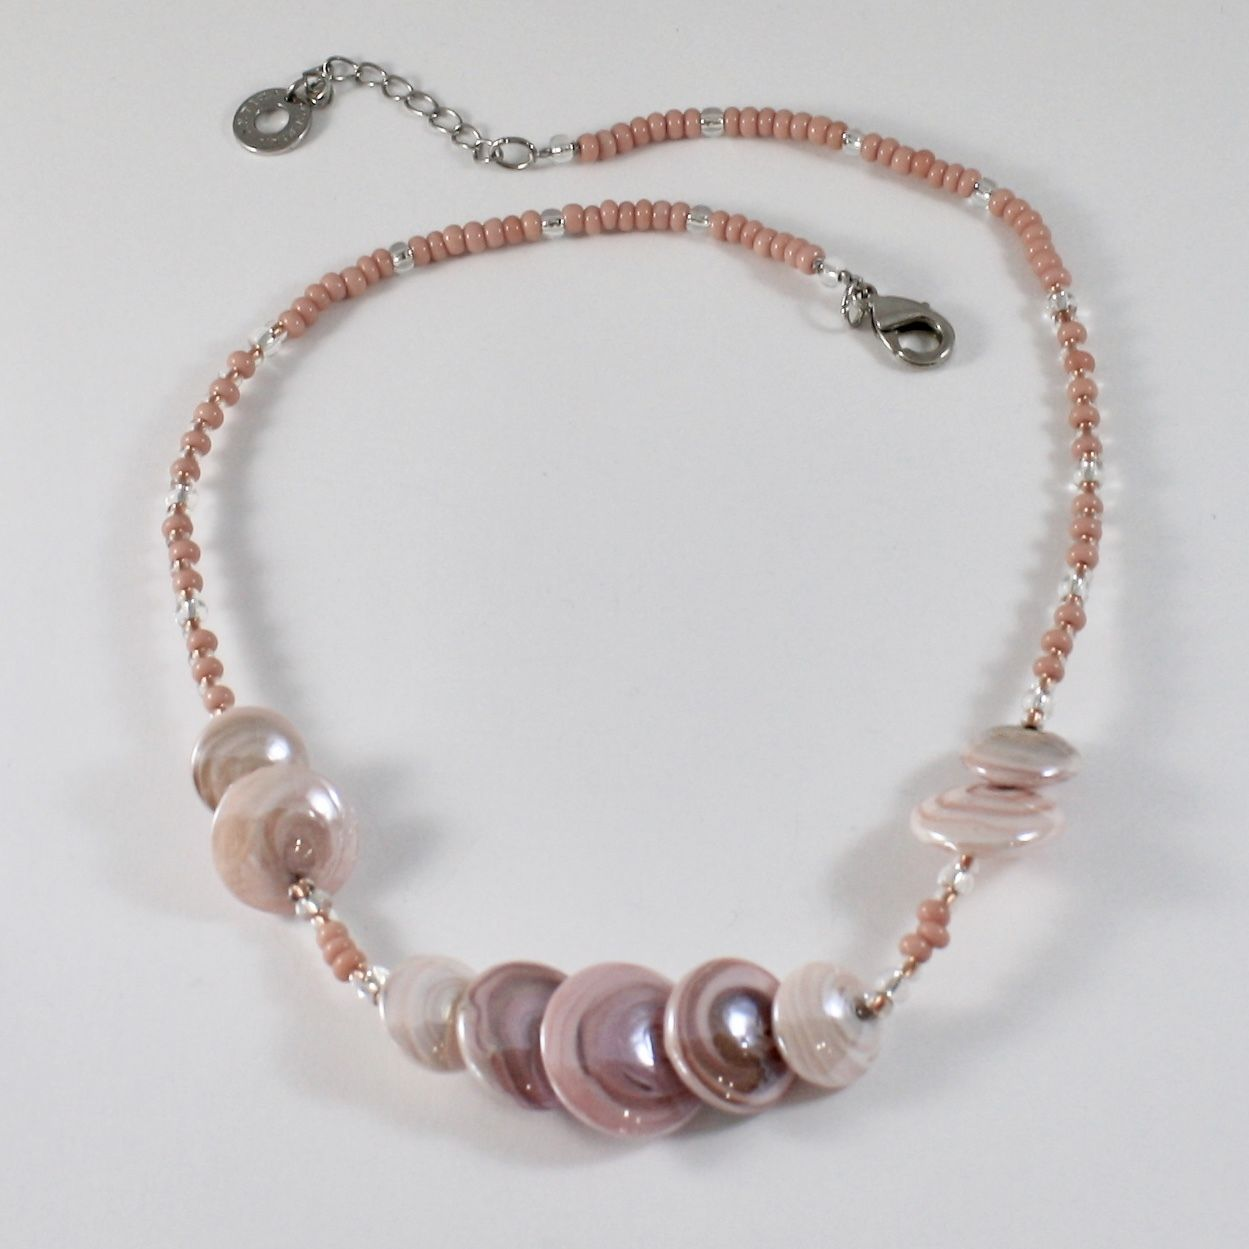 ANTICA MURRINA VENEZIA NECKLACE WITH BIG PINK MURANO GLASS DISCS, SIZABLE